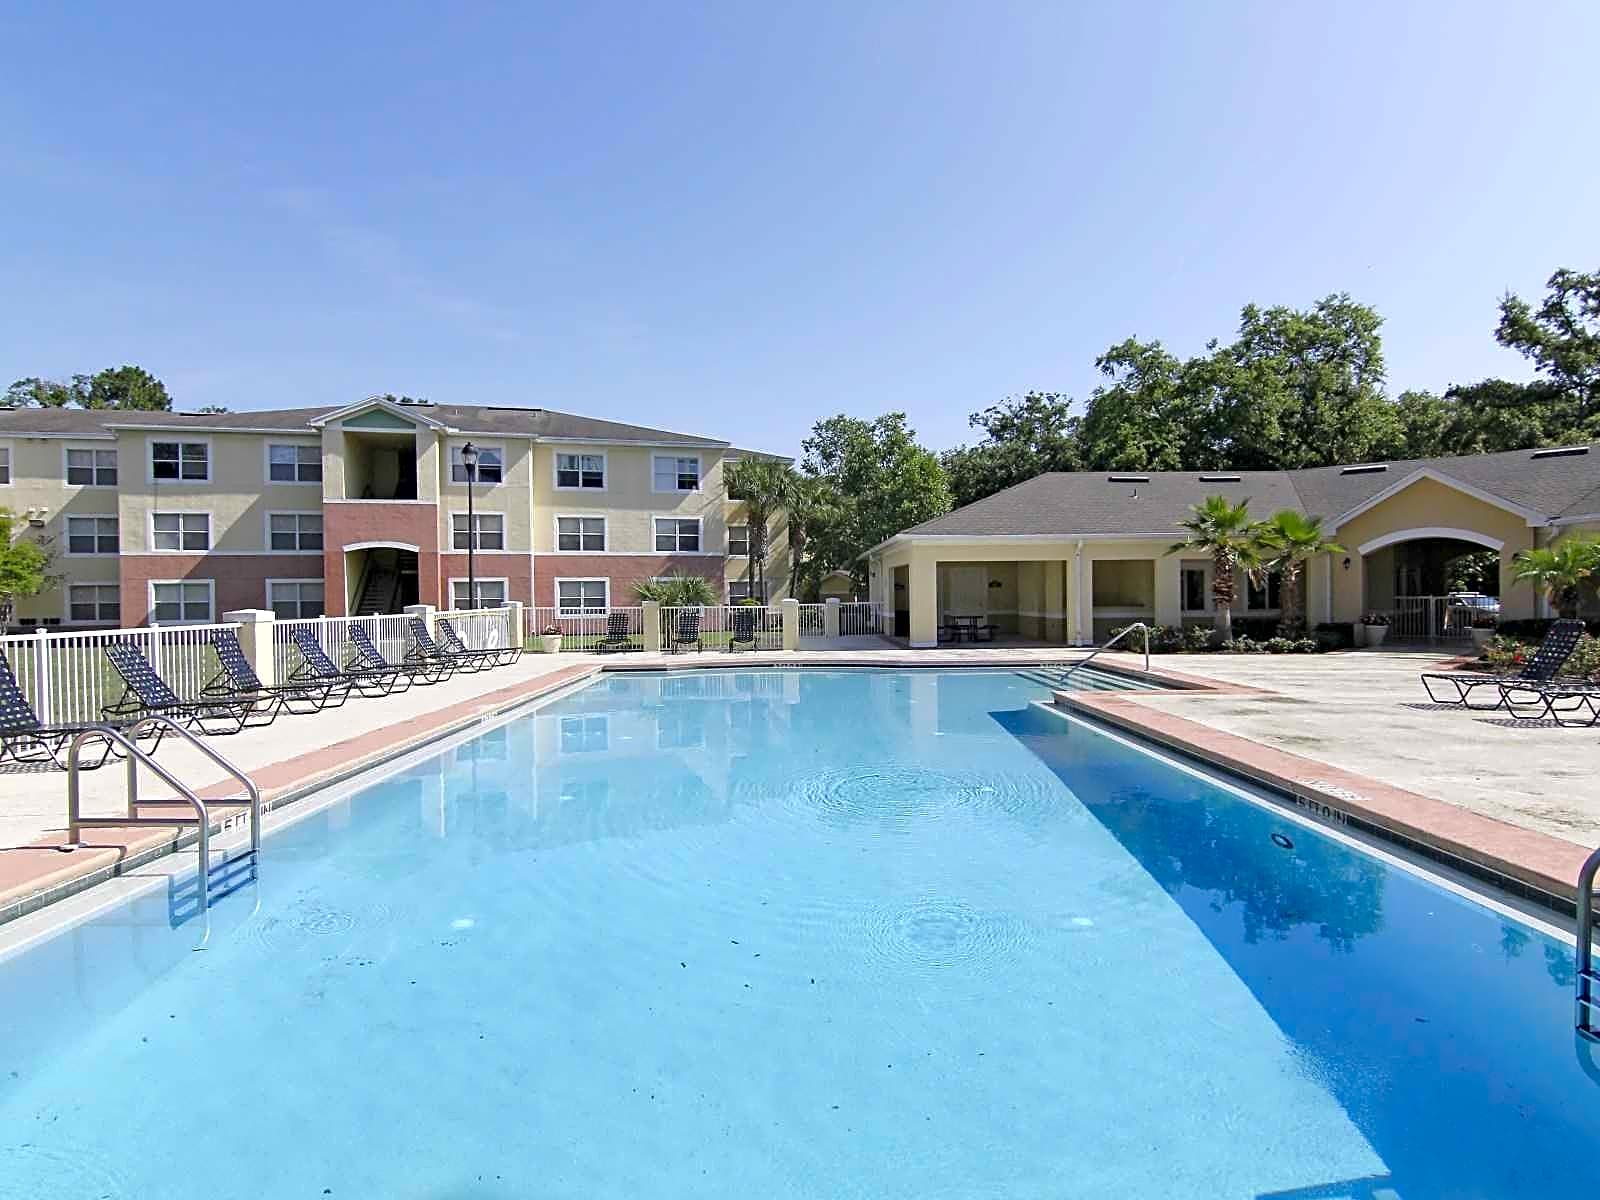 Photo: Jacksonville Apartment for Rent - $725.00 / month; 3 Bd & 2 Ba